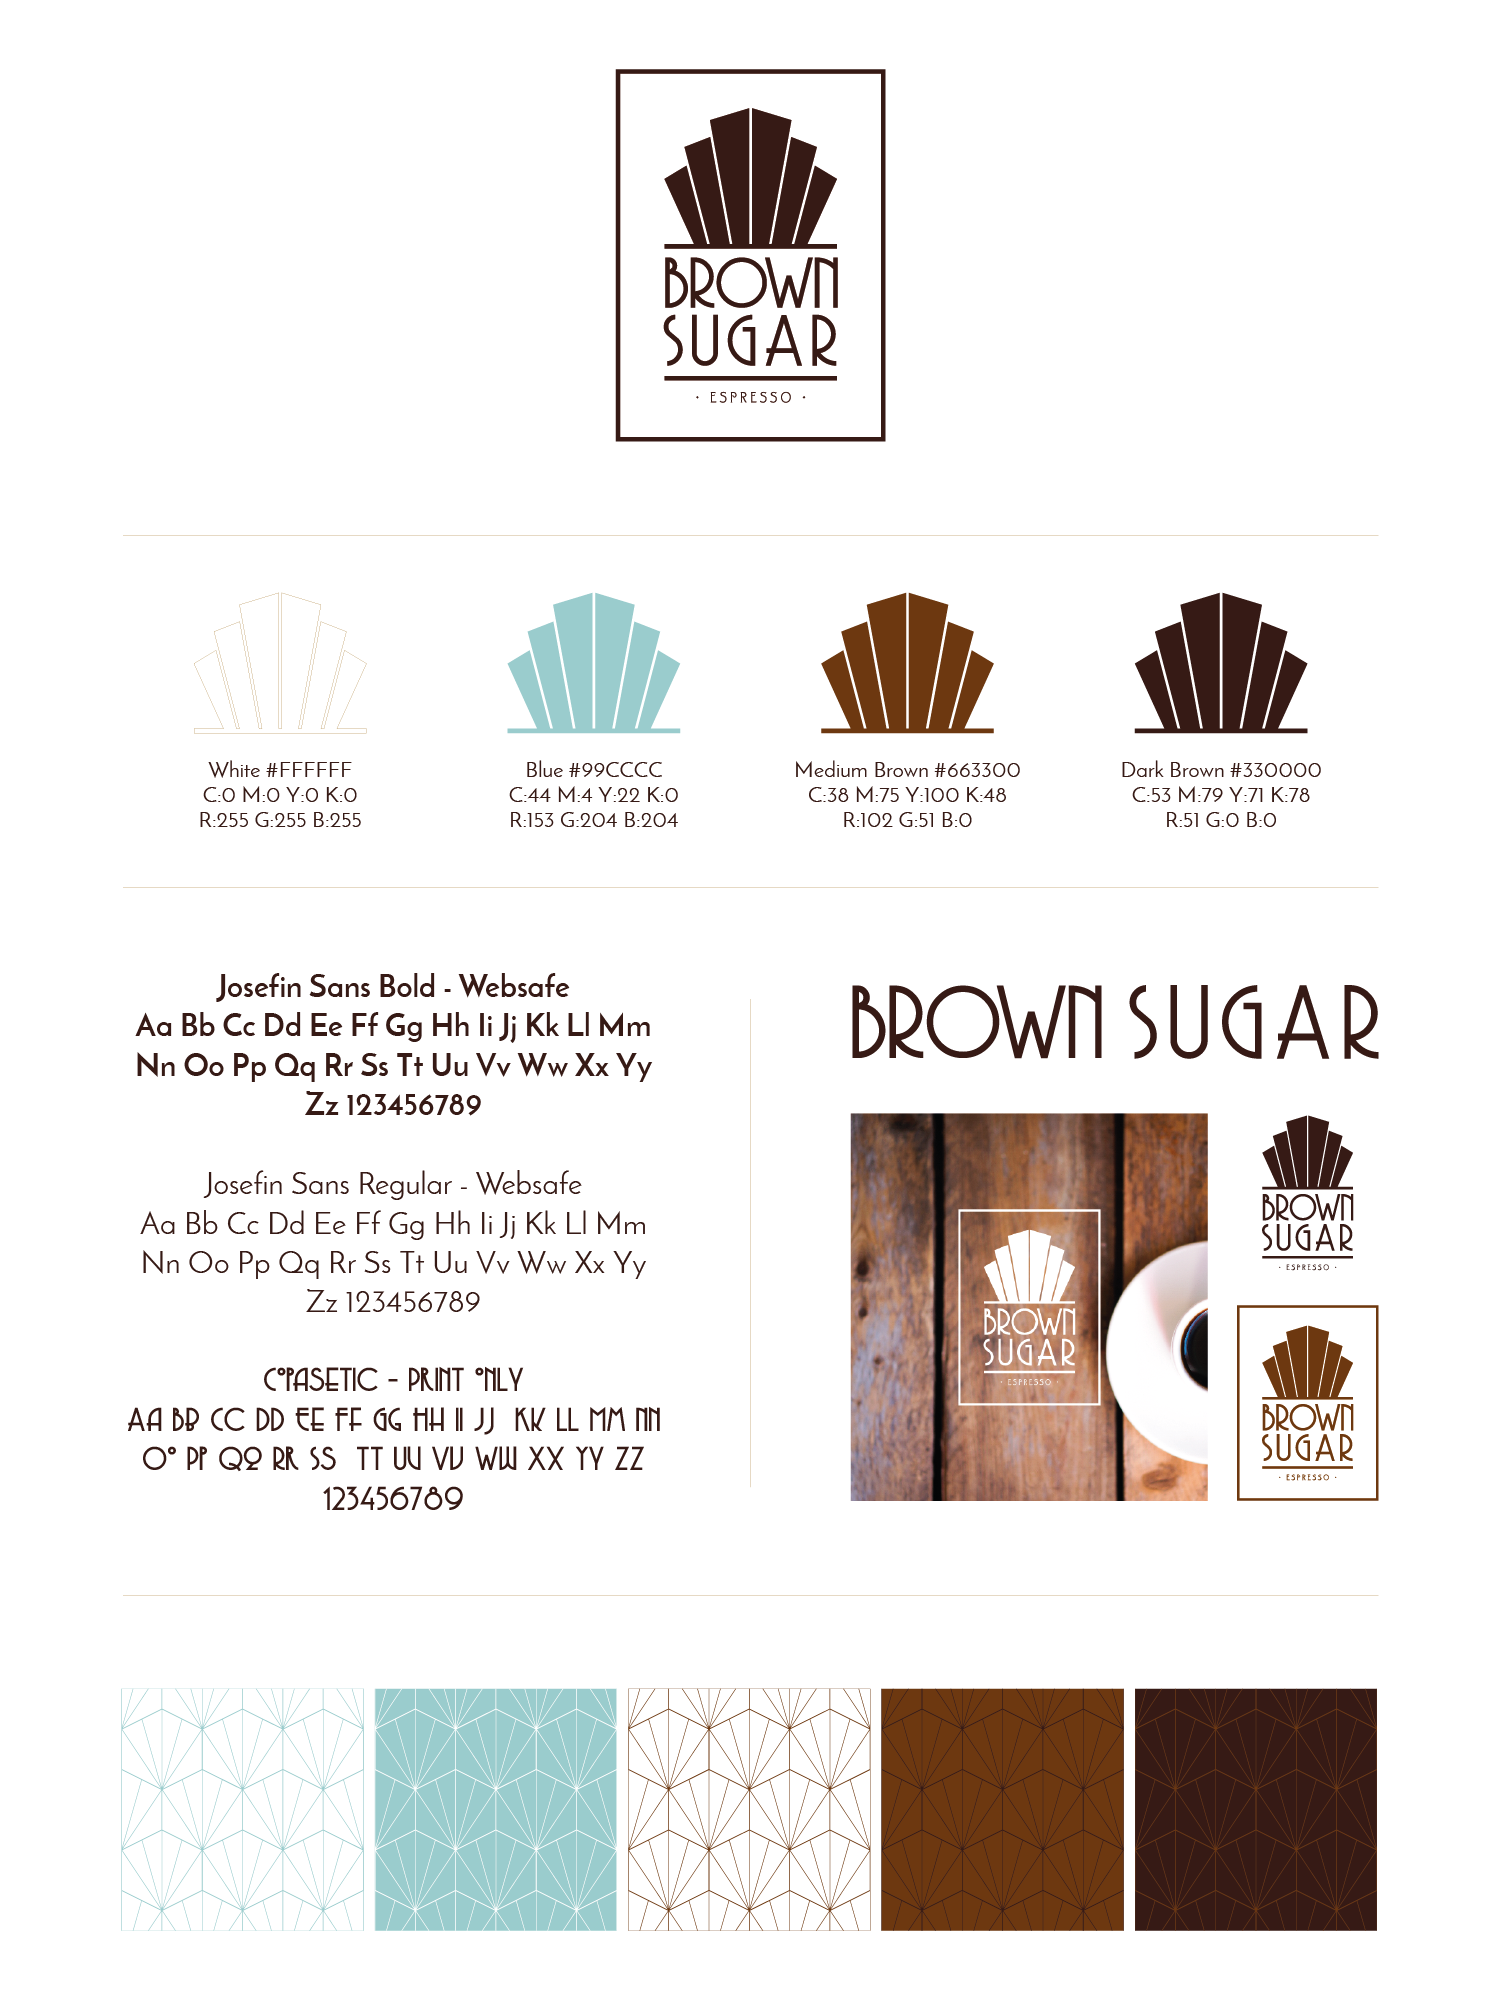 Brown Sugar Espresso Branding Board